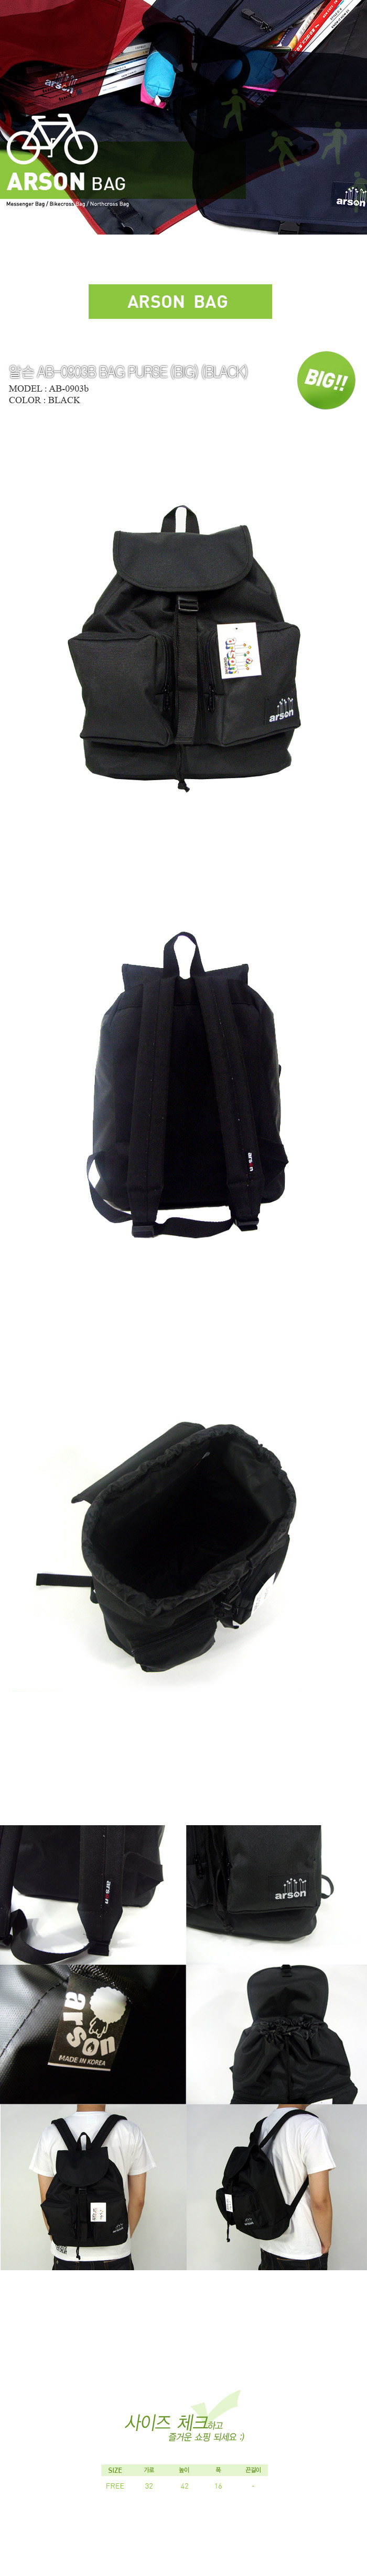 [ ARSON ] AB-0903(B) Big (Black)/Backpack School Bag